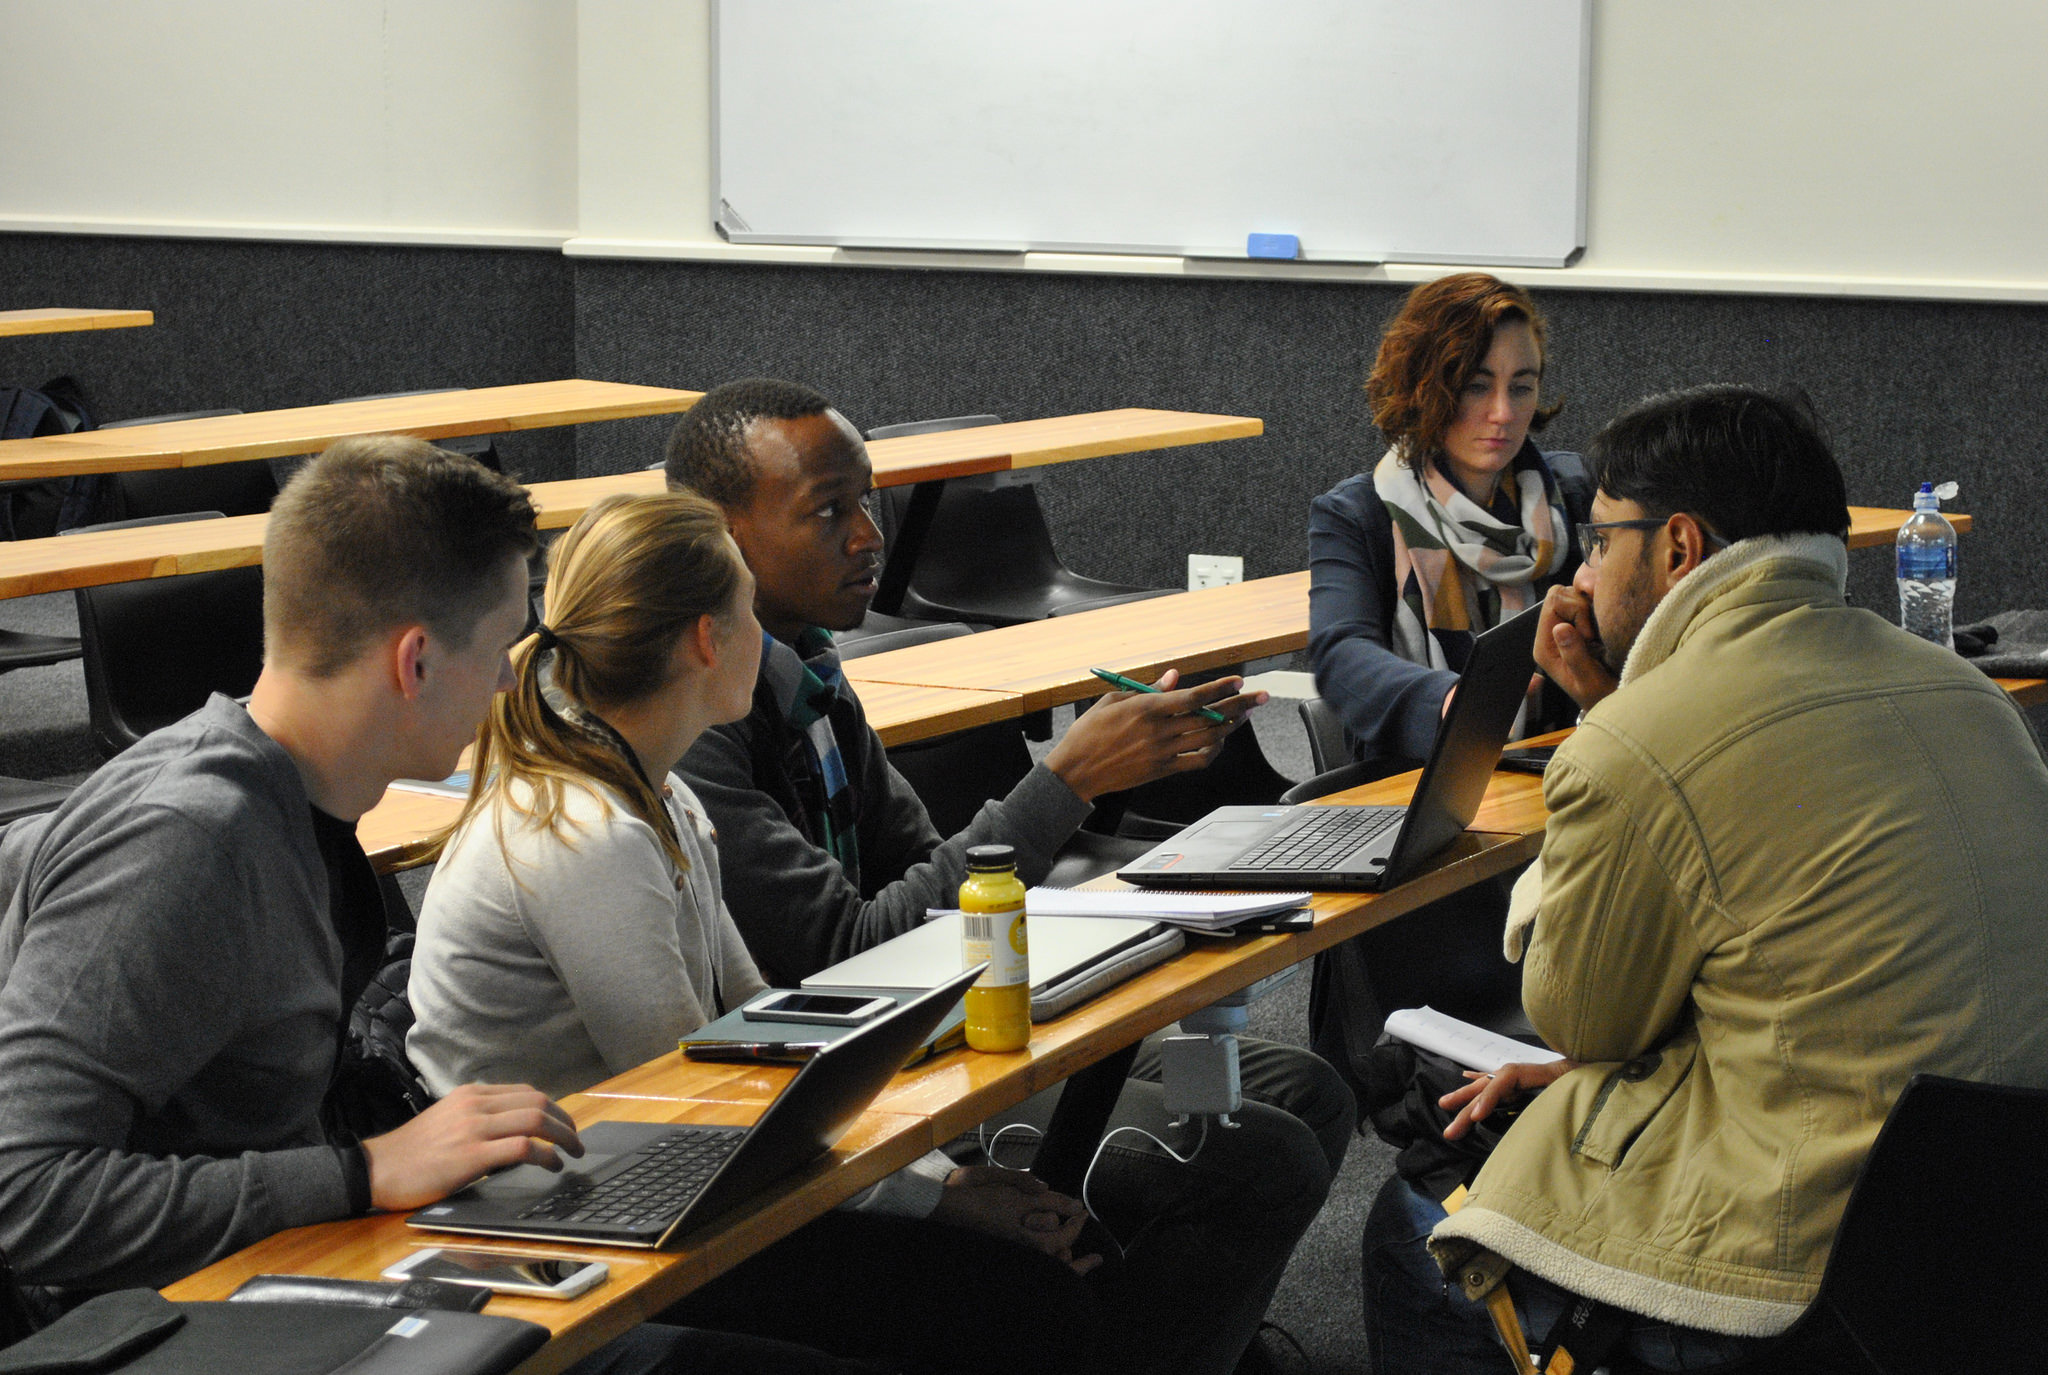 Concentrated study on the group project. Photo credit: Energy Politics Group and ETH Global.